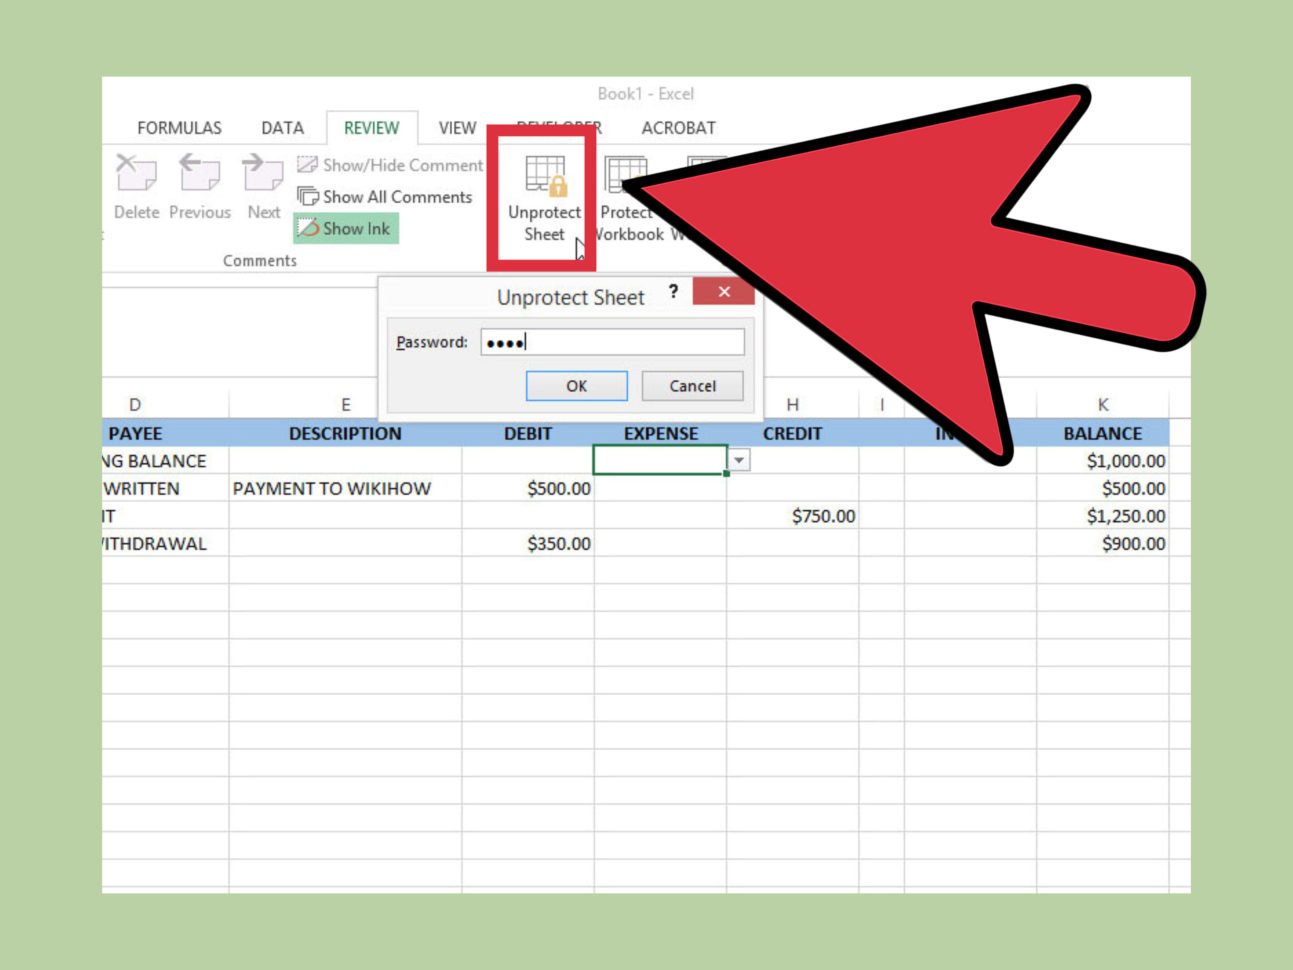 Convert Excel Spreadsheet To Web Application Regarding Convert Excel Spreadsheet To Web Application – Spreadsheet Collections